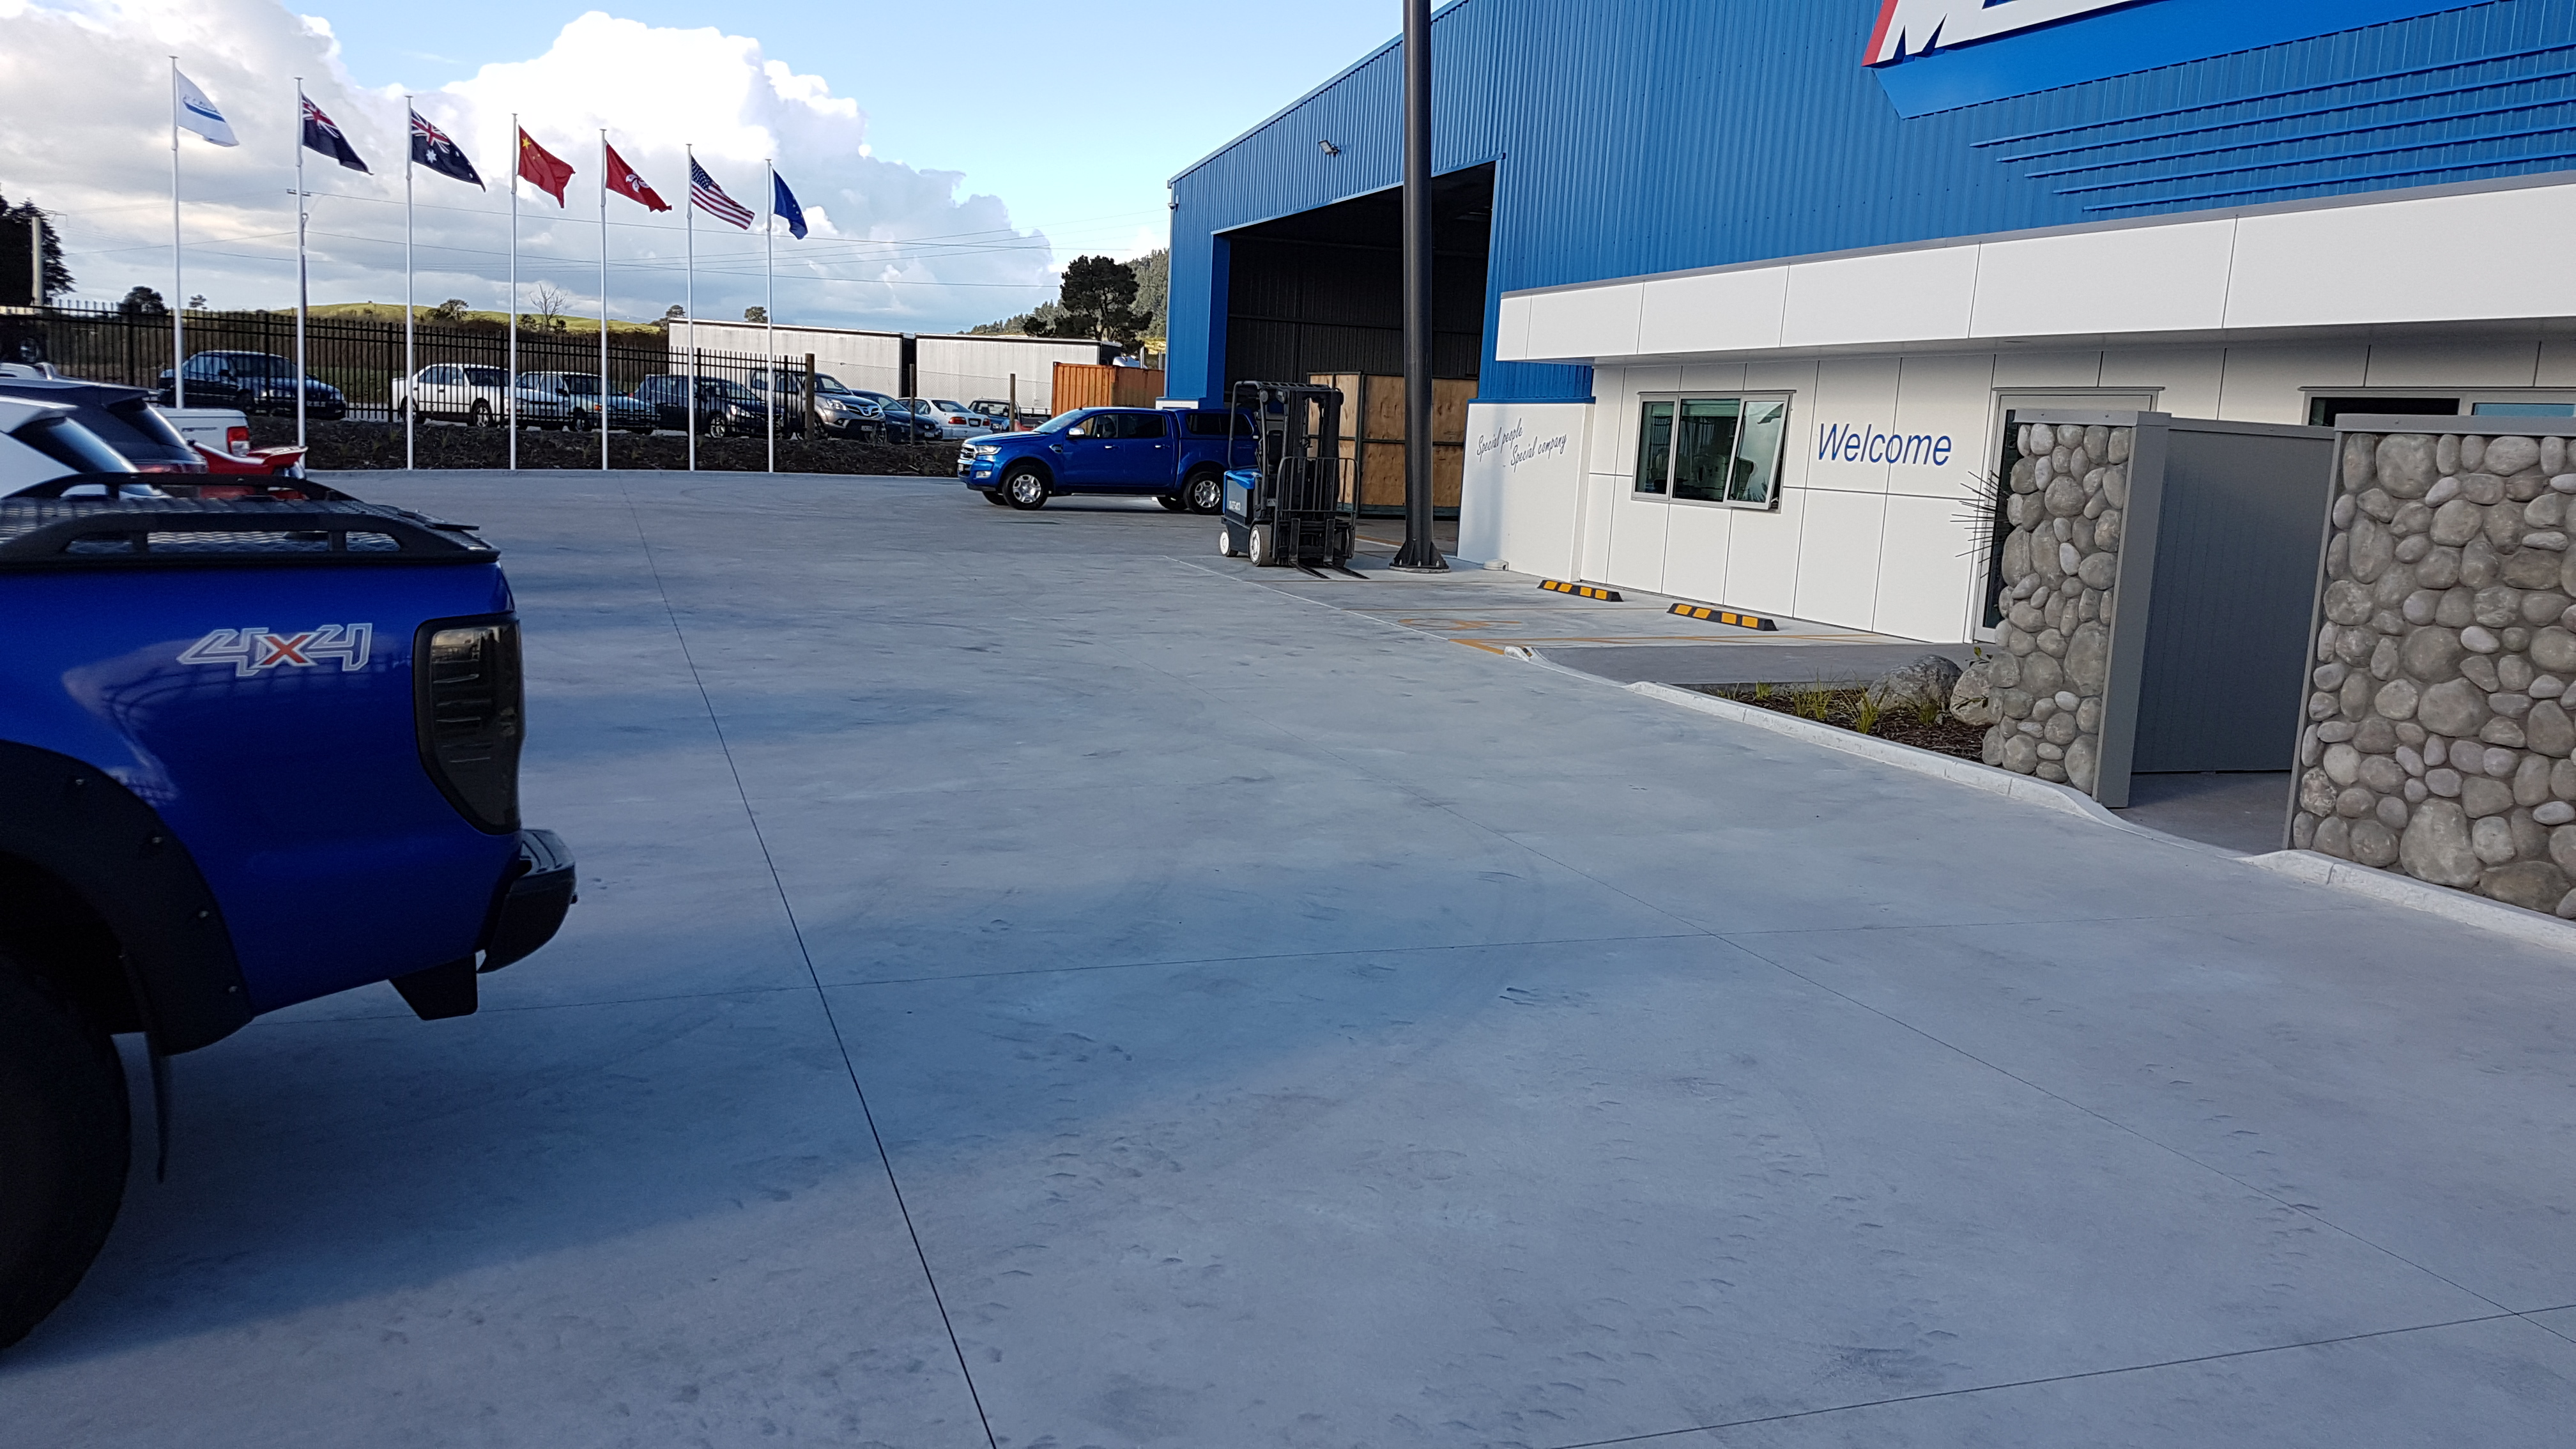 A parking area that uses a strong fibre cement yard